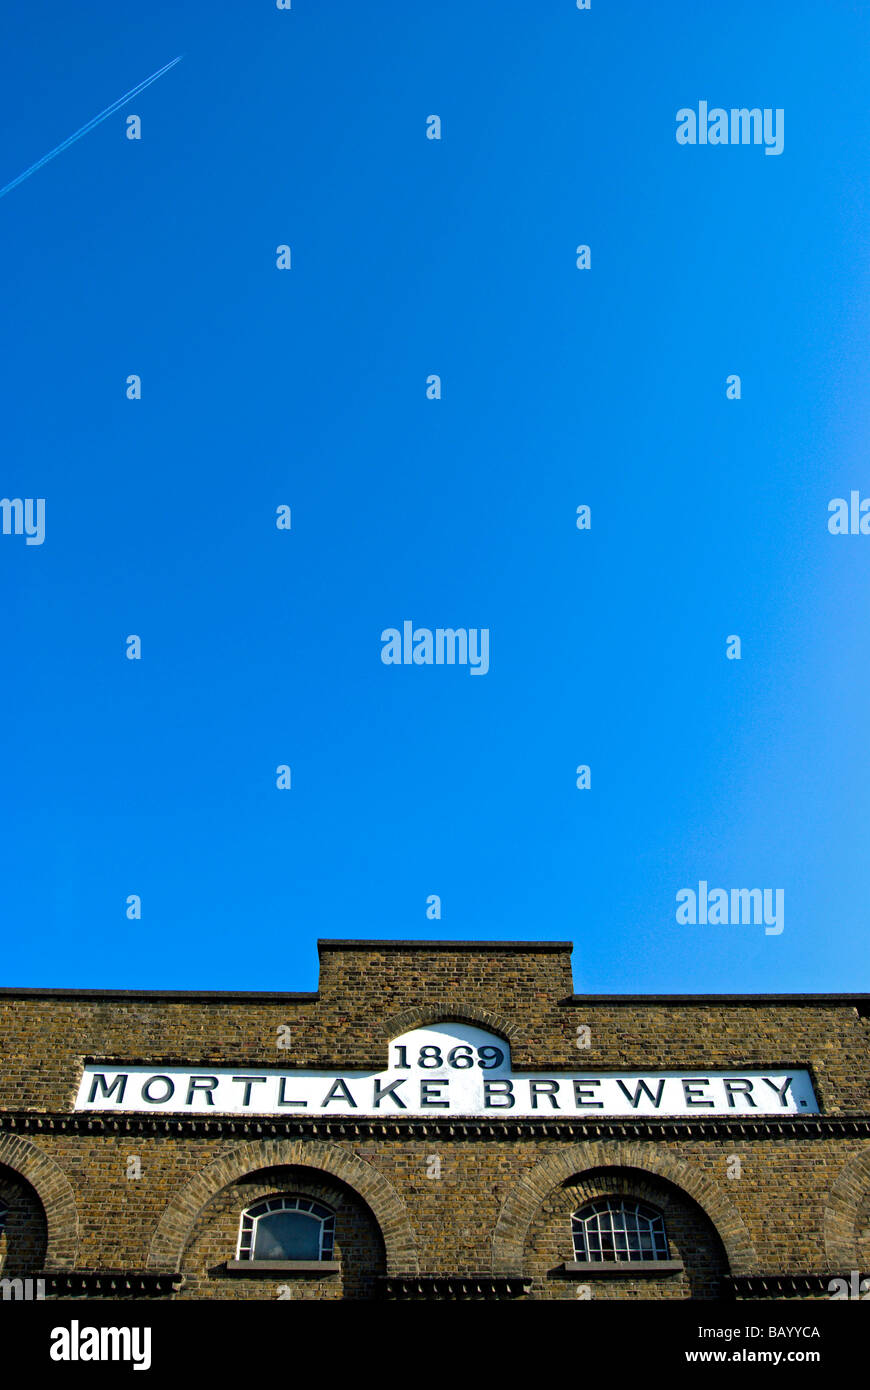 the name mortlake brewery and the date 1869 on a brick building in mortlake, southwest london, england - Stock Image